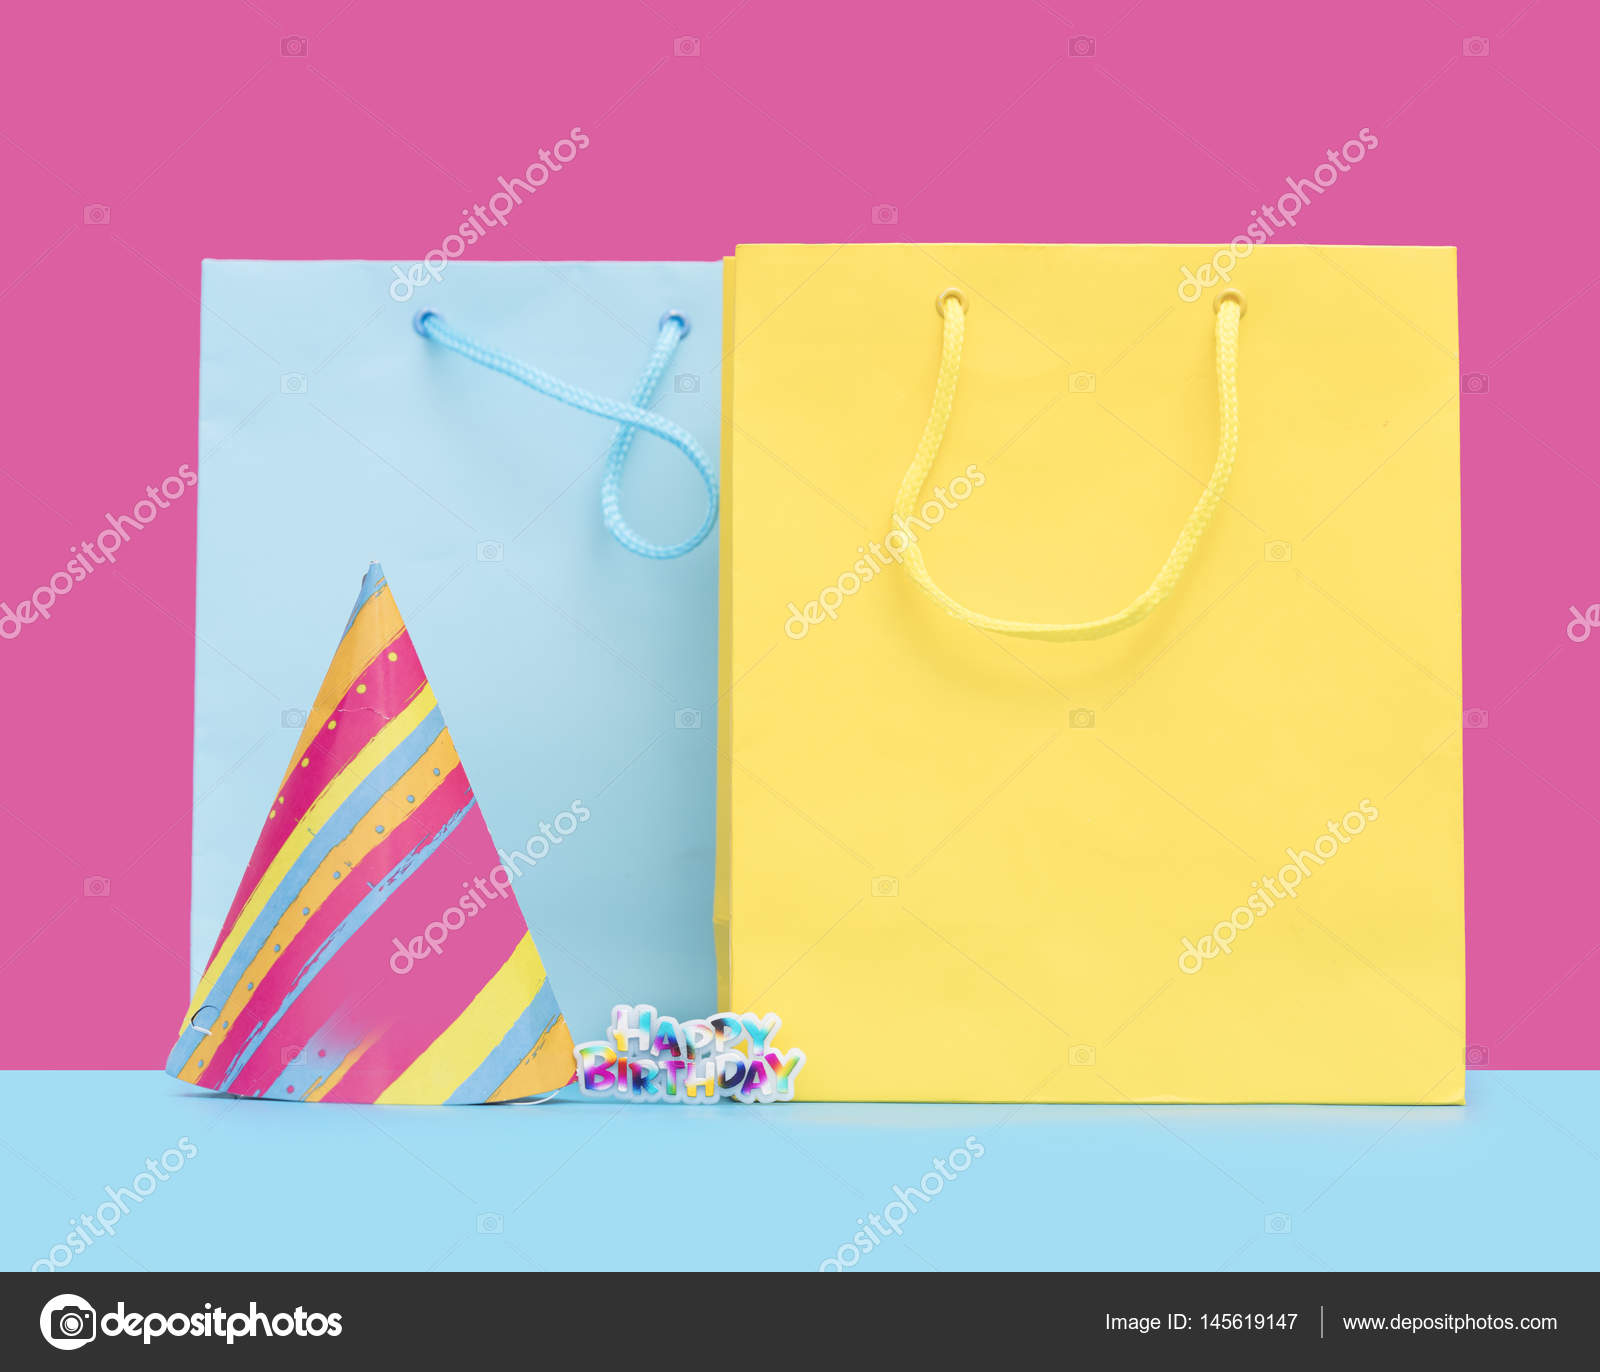 Cool Yellow And Blue Shopping Bags Birthday Hat Sticker In